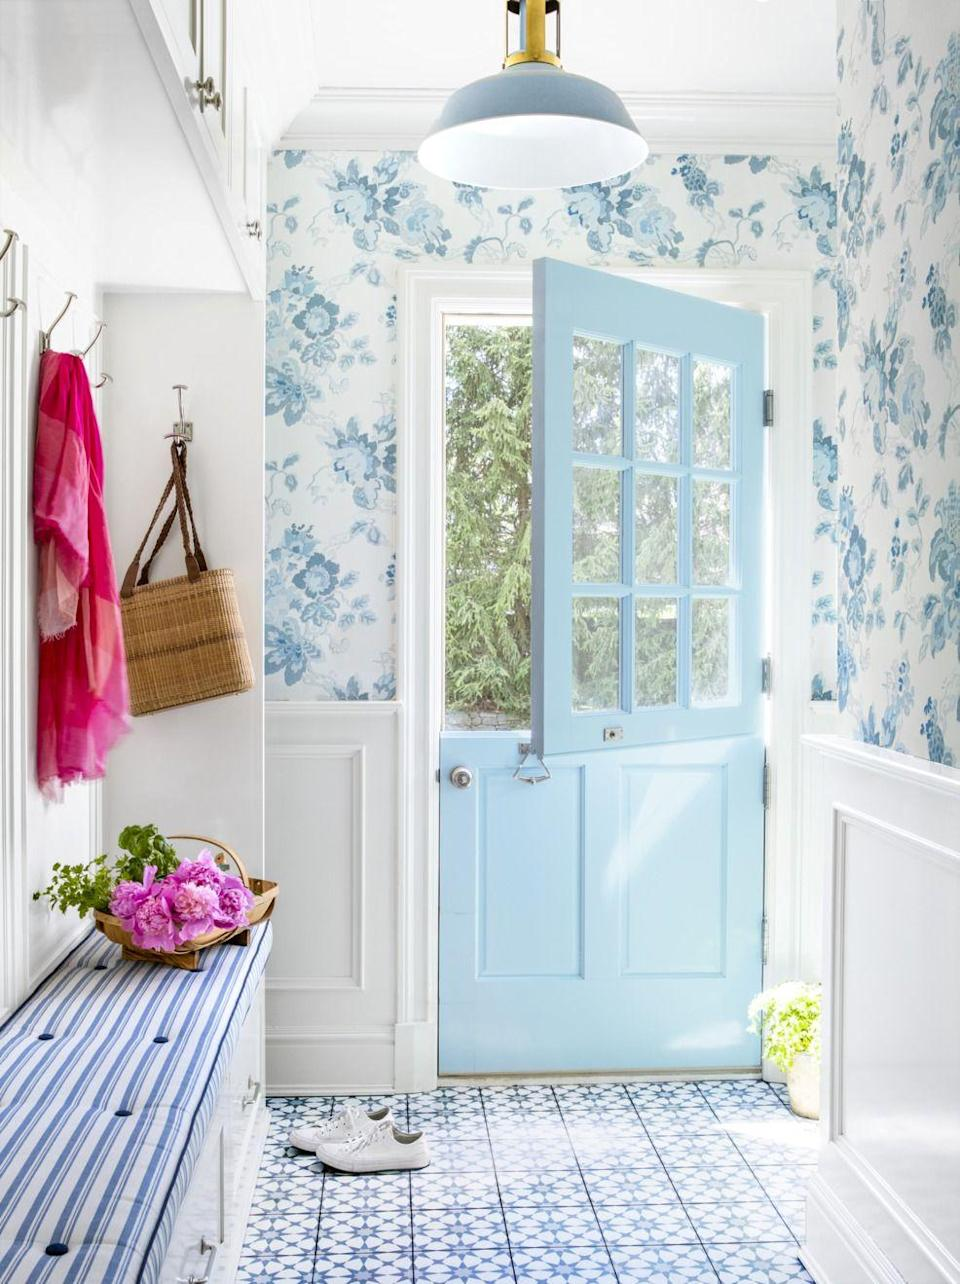 """<p>Match your mudroom with the cheeriness of this bright blue door to leave you in a wonderful mood every time you leave your house.</p><p><a class=""""link rapid-noclick-resp"""" href=""""https://store.benjaminmoore.com/storefront/color-samples/paint-color-samples-1-pint/prodPRM01A.html?sbcColor=793"""" rel=""""nofollow noopener"""" target=""""_blank"""" data-ylk=""""slk:SHOP WATERCOLOR BLUE BY BENJAMIN MOORE"""">SHOP WATERCOLOR BLUE BY BENJAMIN MOORE</a></p>"""